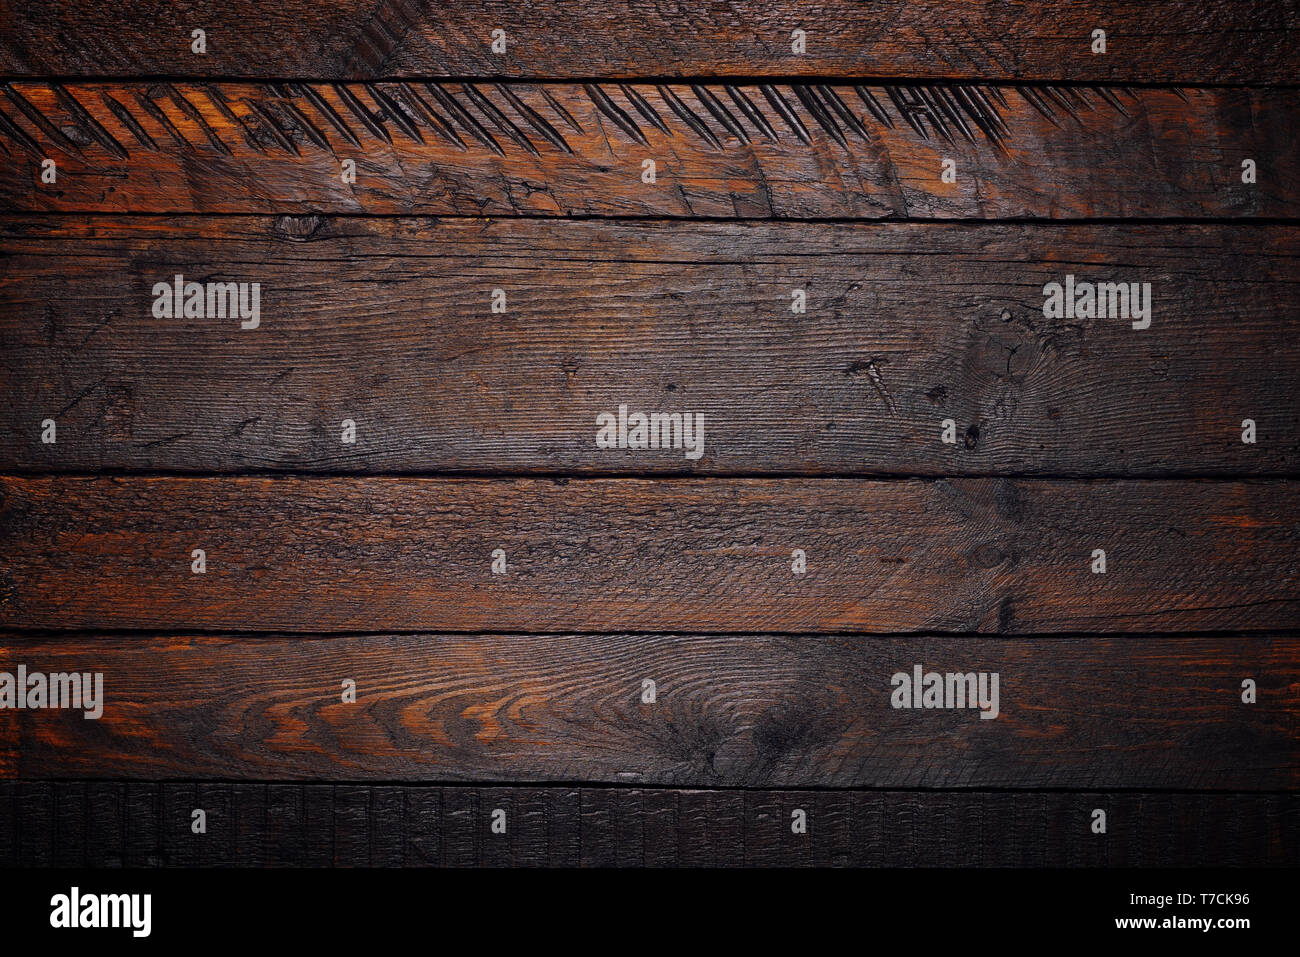 Rustic wooden table texture flat lay - Stock Image